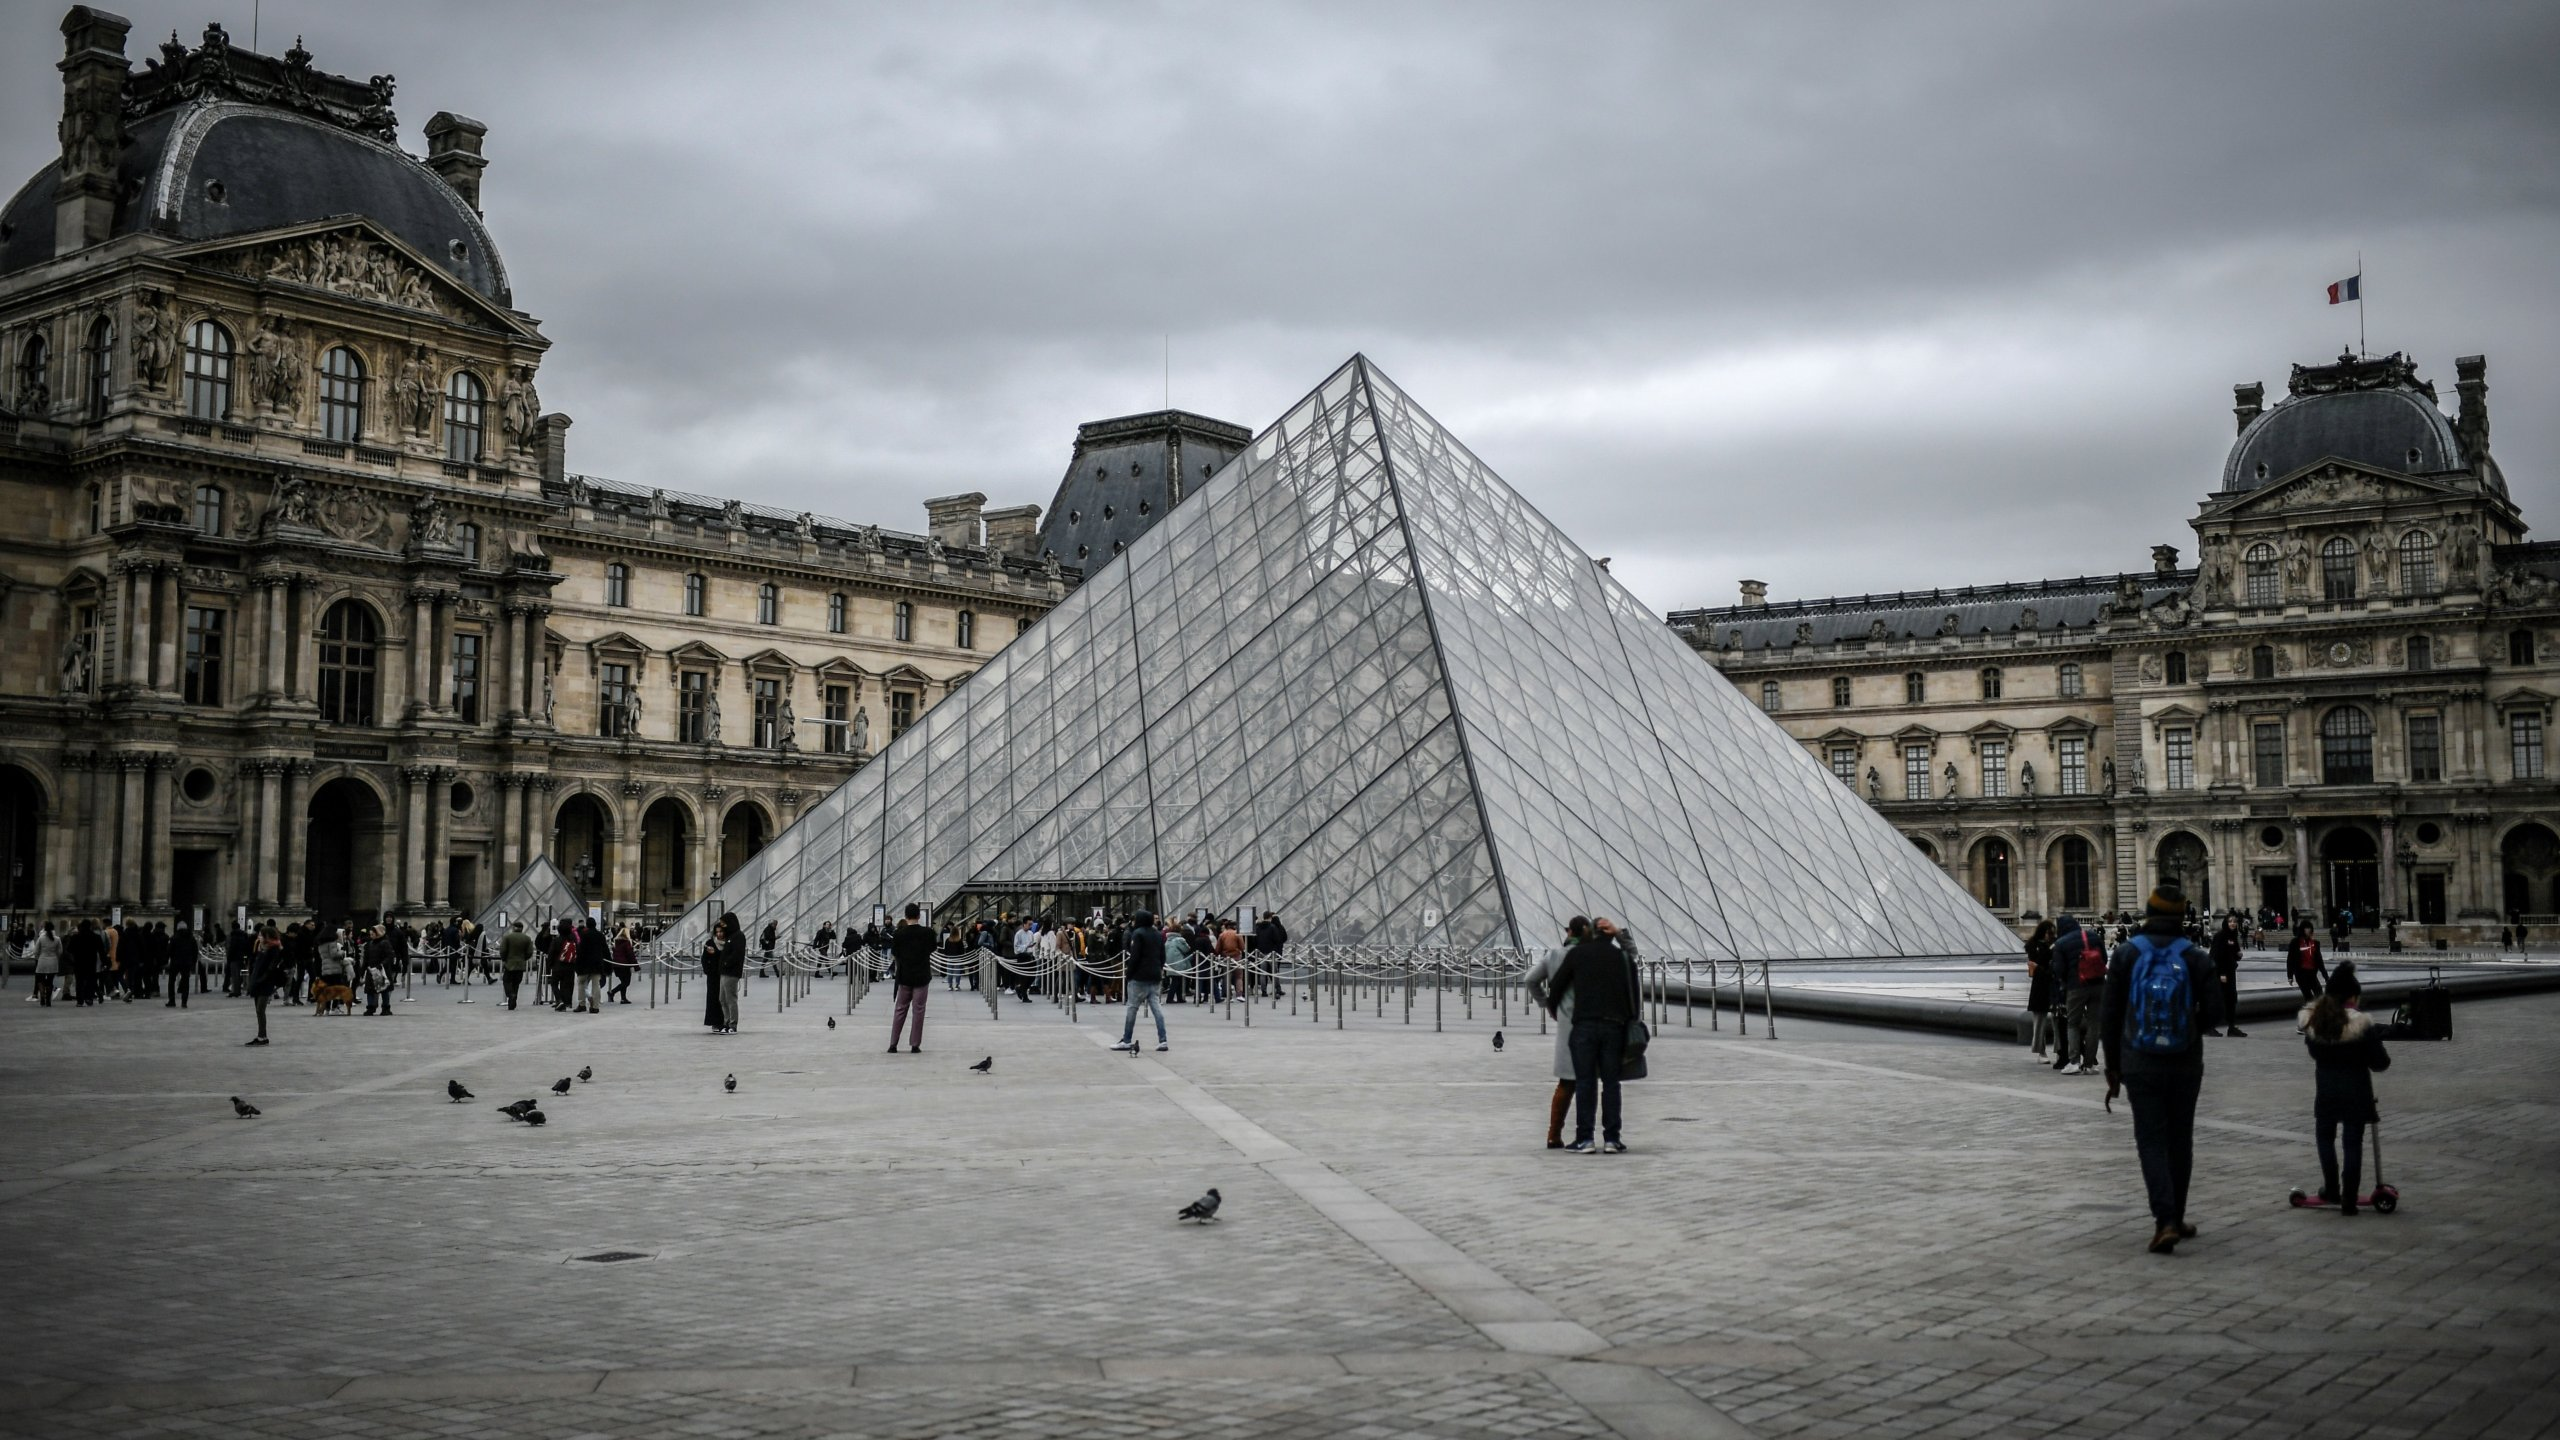 People visit the Louvre on Feb. 28, 2020 in Paris. (STEPHANE DE SAKUTIN/AFP via Getty Images)